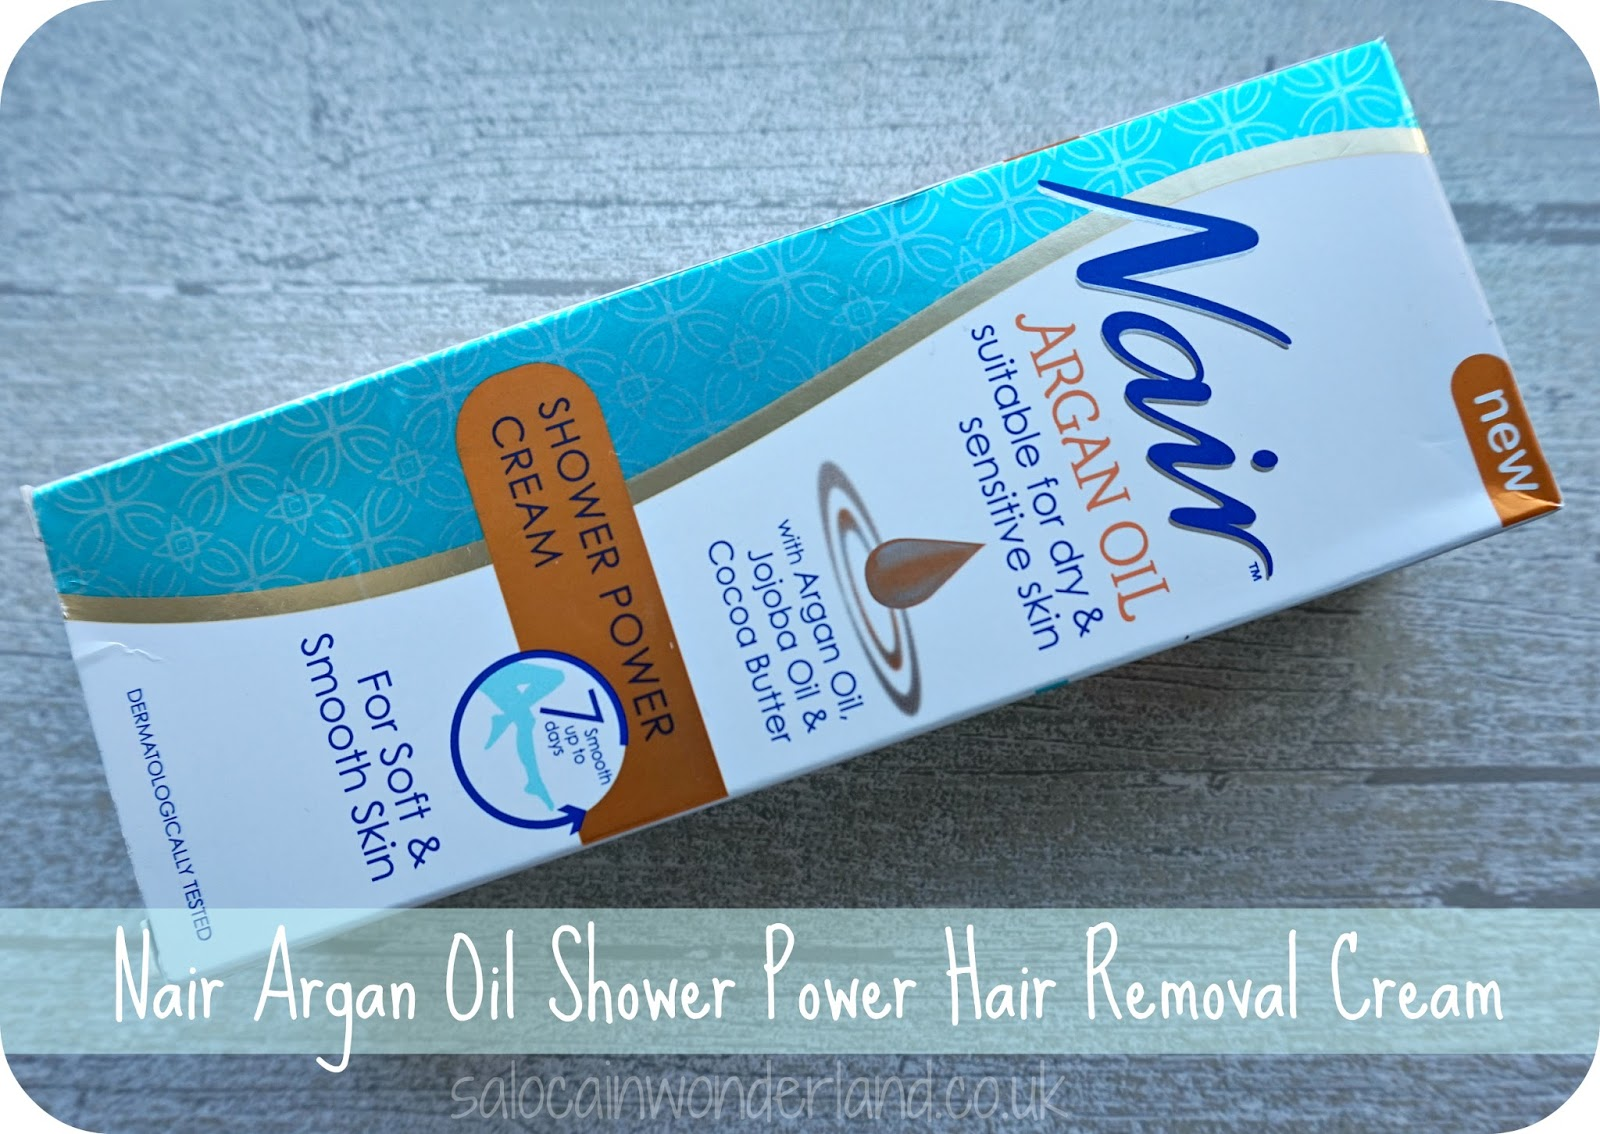 Saloca In Wonderland Nair Argan Oil Shower Power Hair Removal